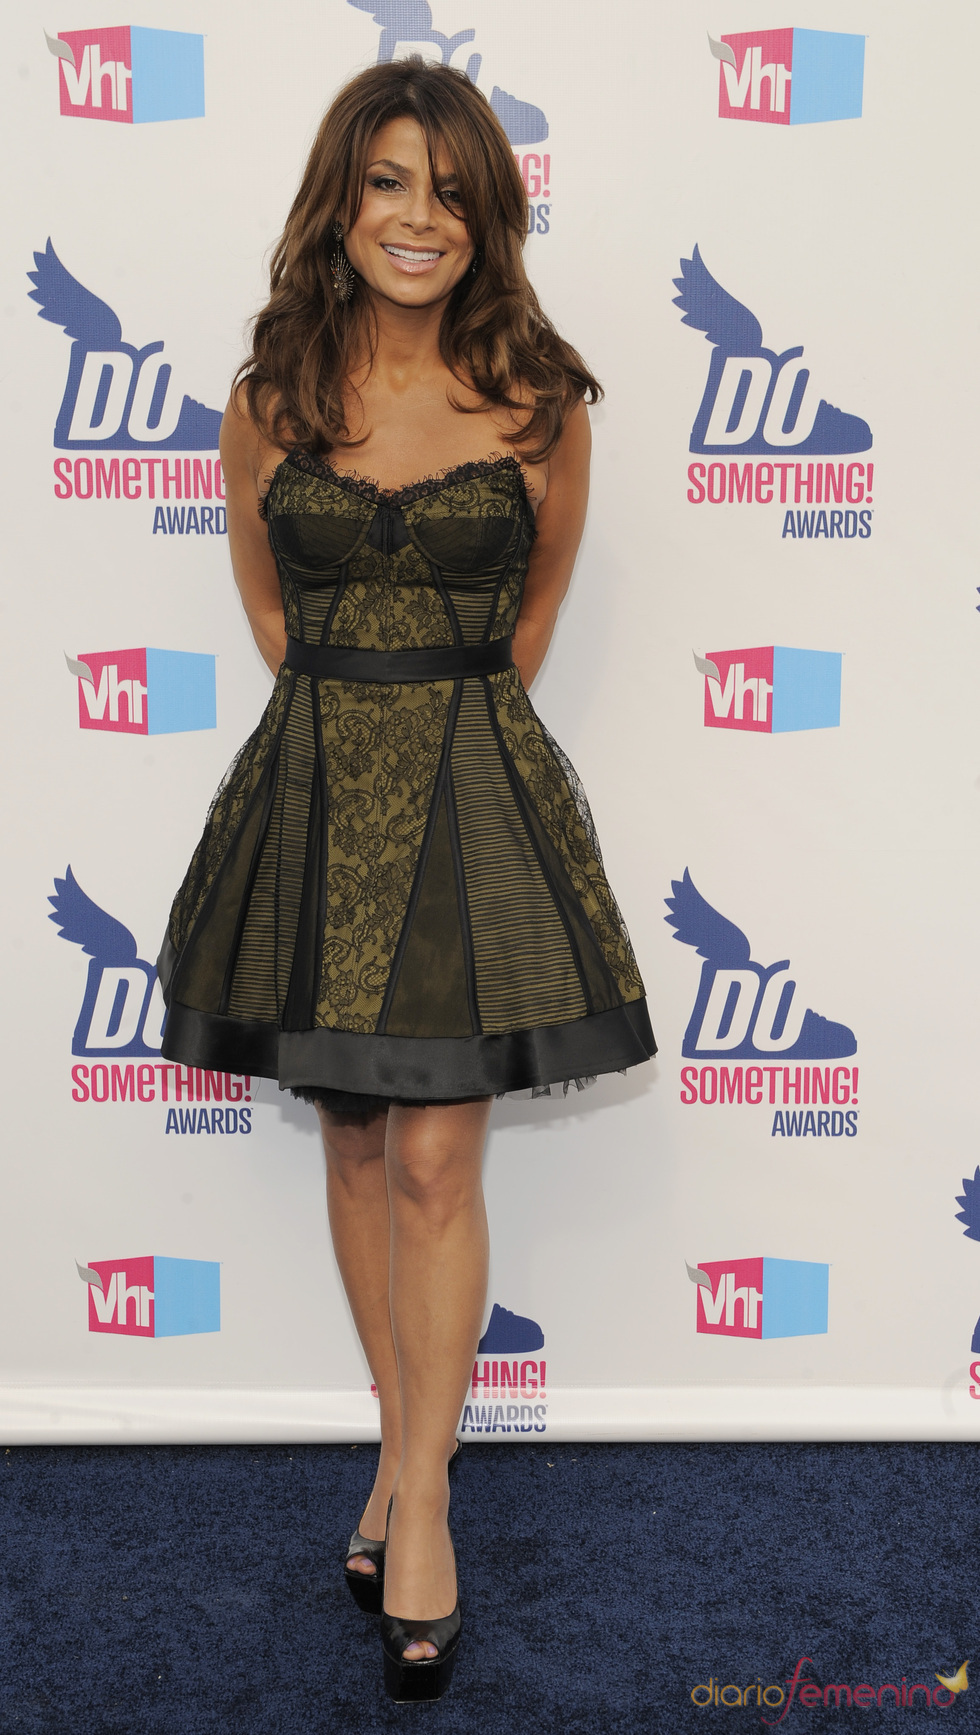 Paula Abdul en los premios Do Somethig